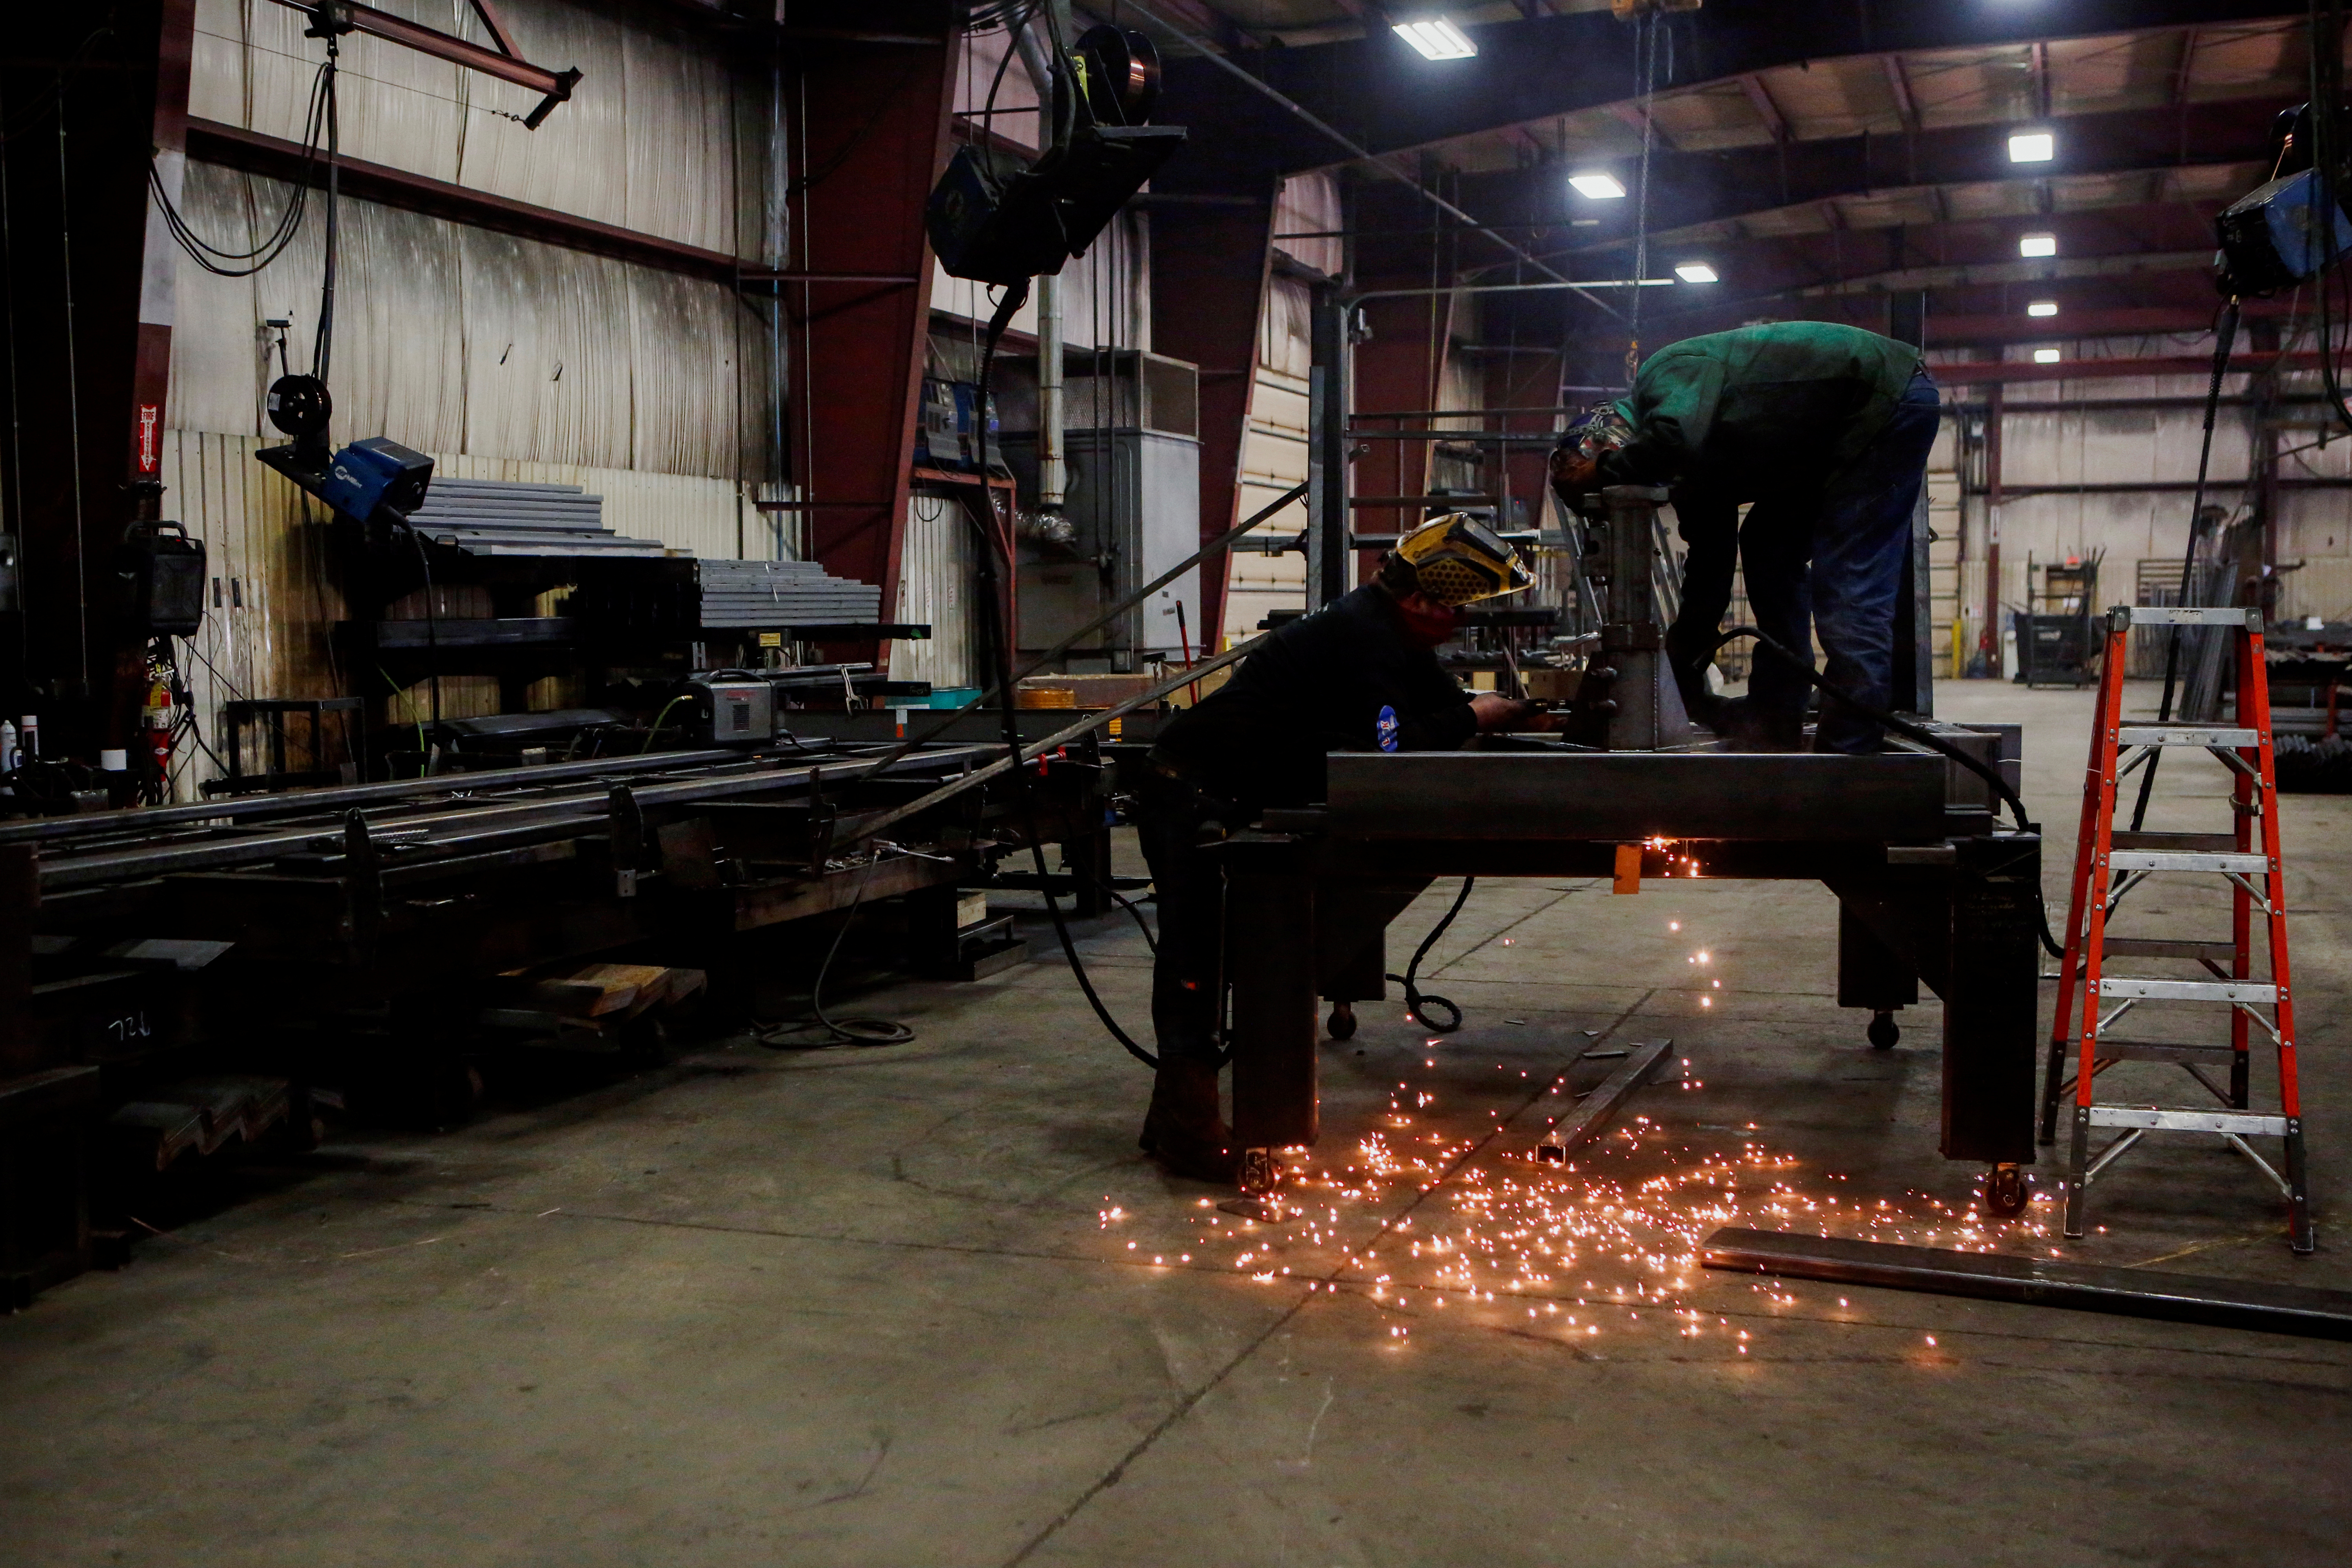 Matt Dillion and Chad Damron weld an upper deck assembly at Look Trailers cargo trailer manufacturing facility in Middlebury, Indiana, U.S., April 1, 2021. REUTERS/Eileen T. Meslar